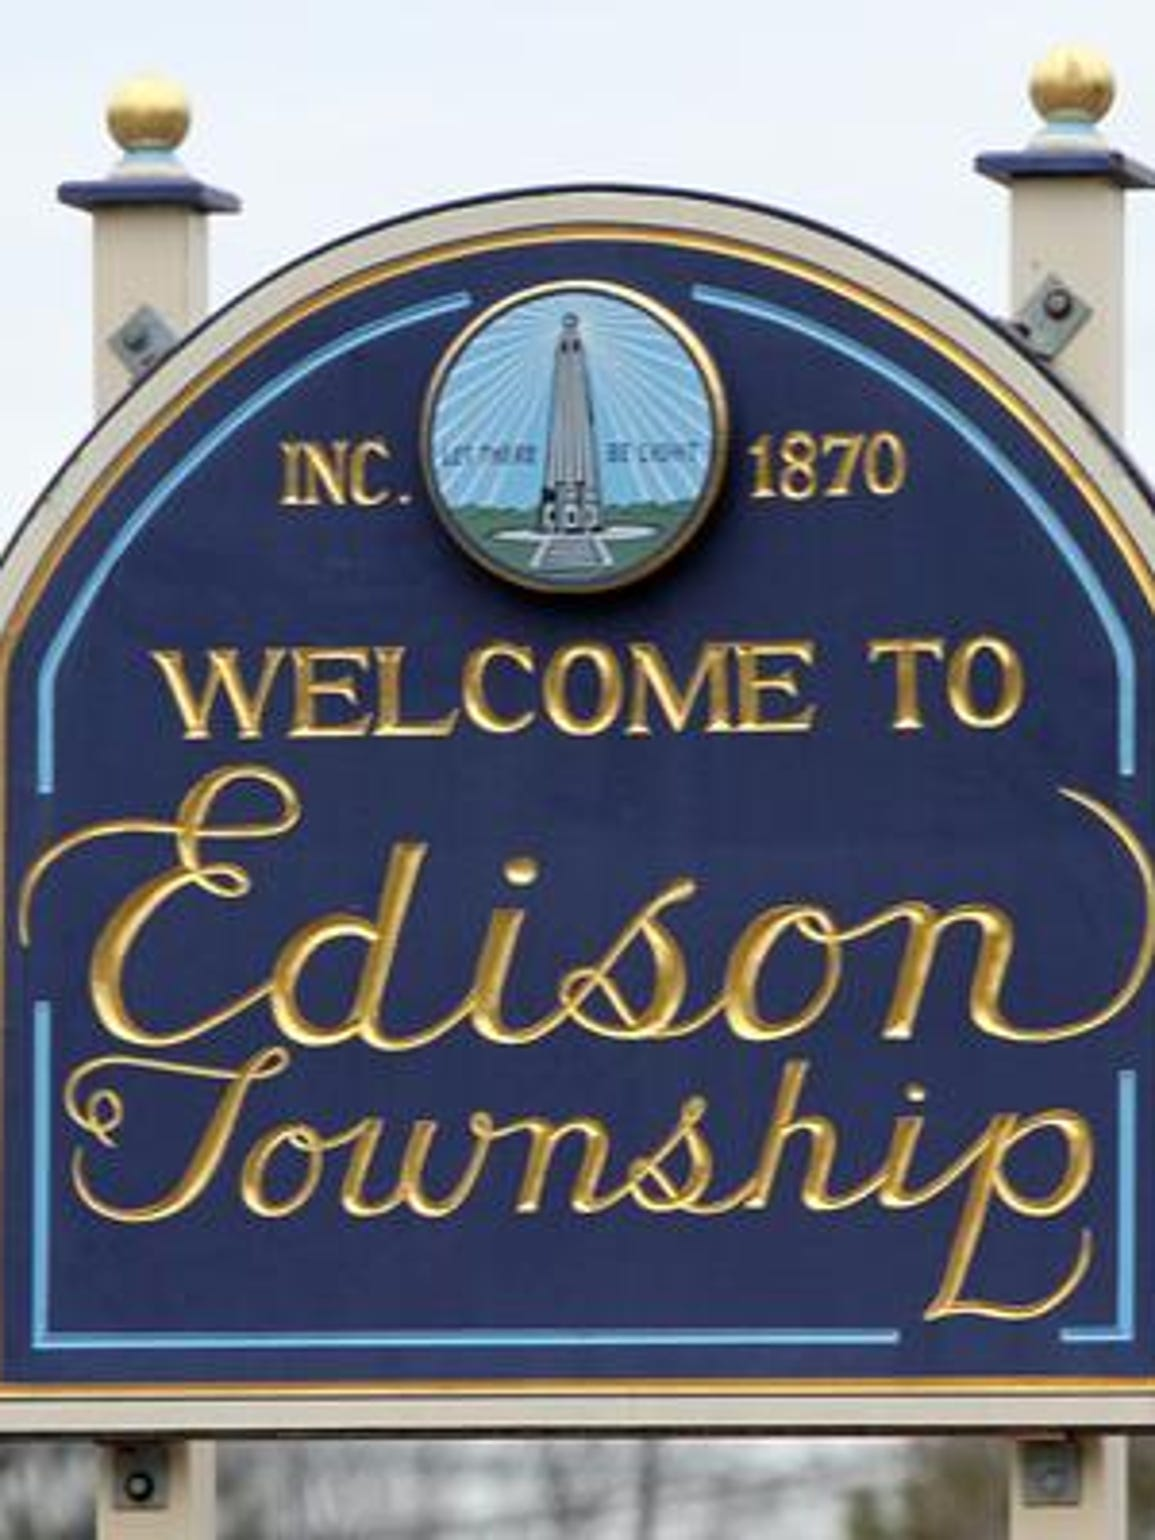 Edison is a community of nearly 100,000 residents.